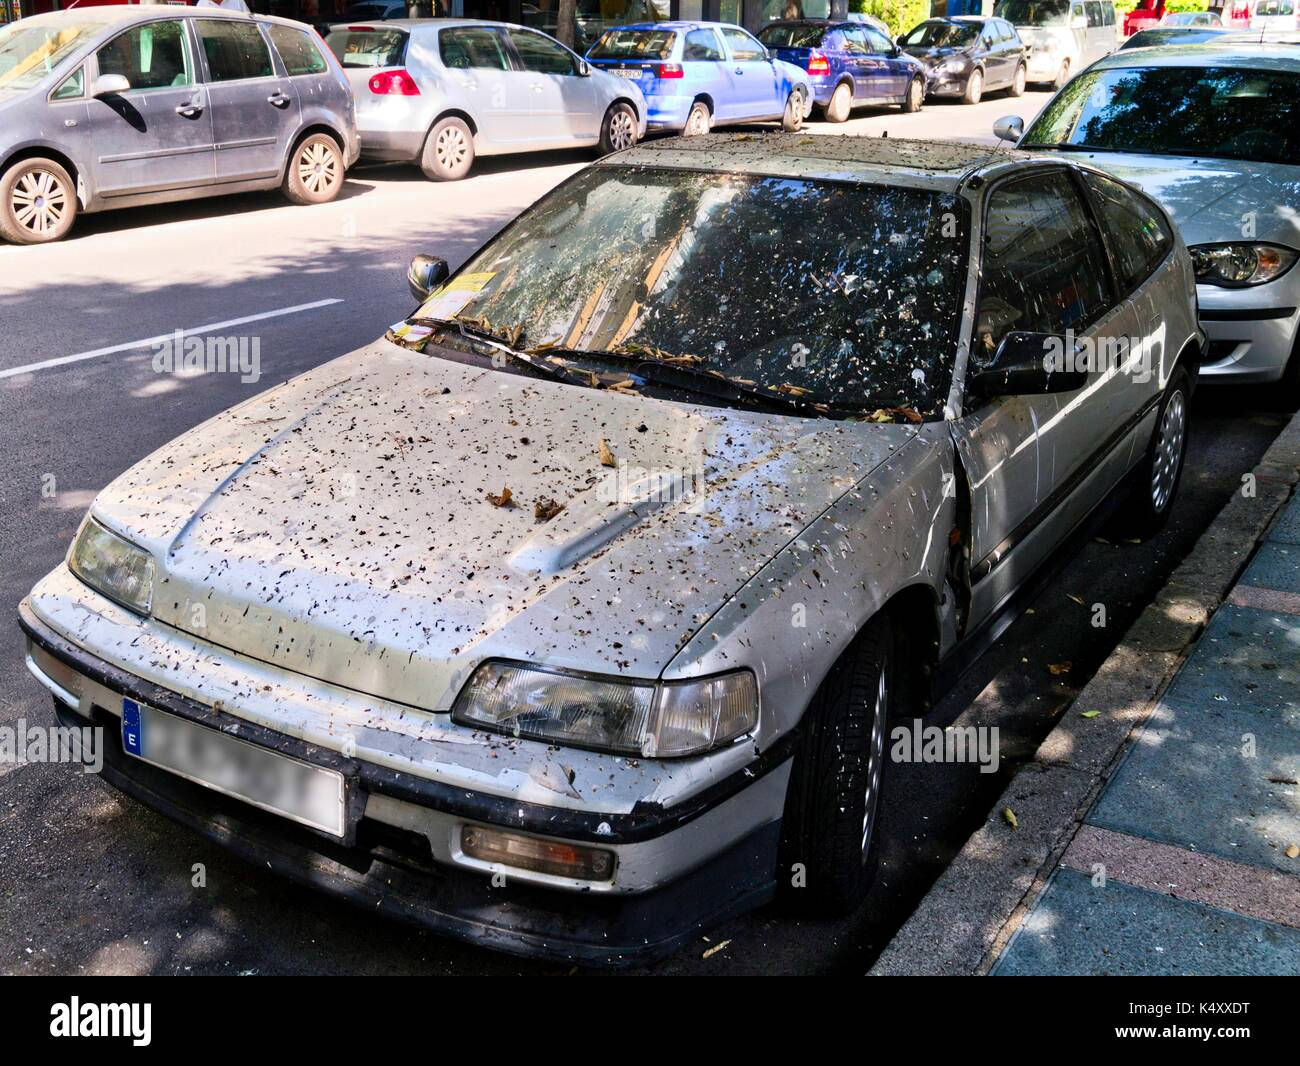 Very dirty car condition covered in bird droppings. - Stock Image